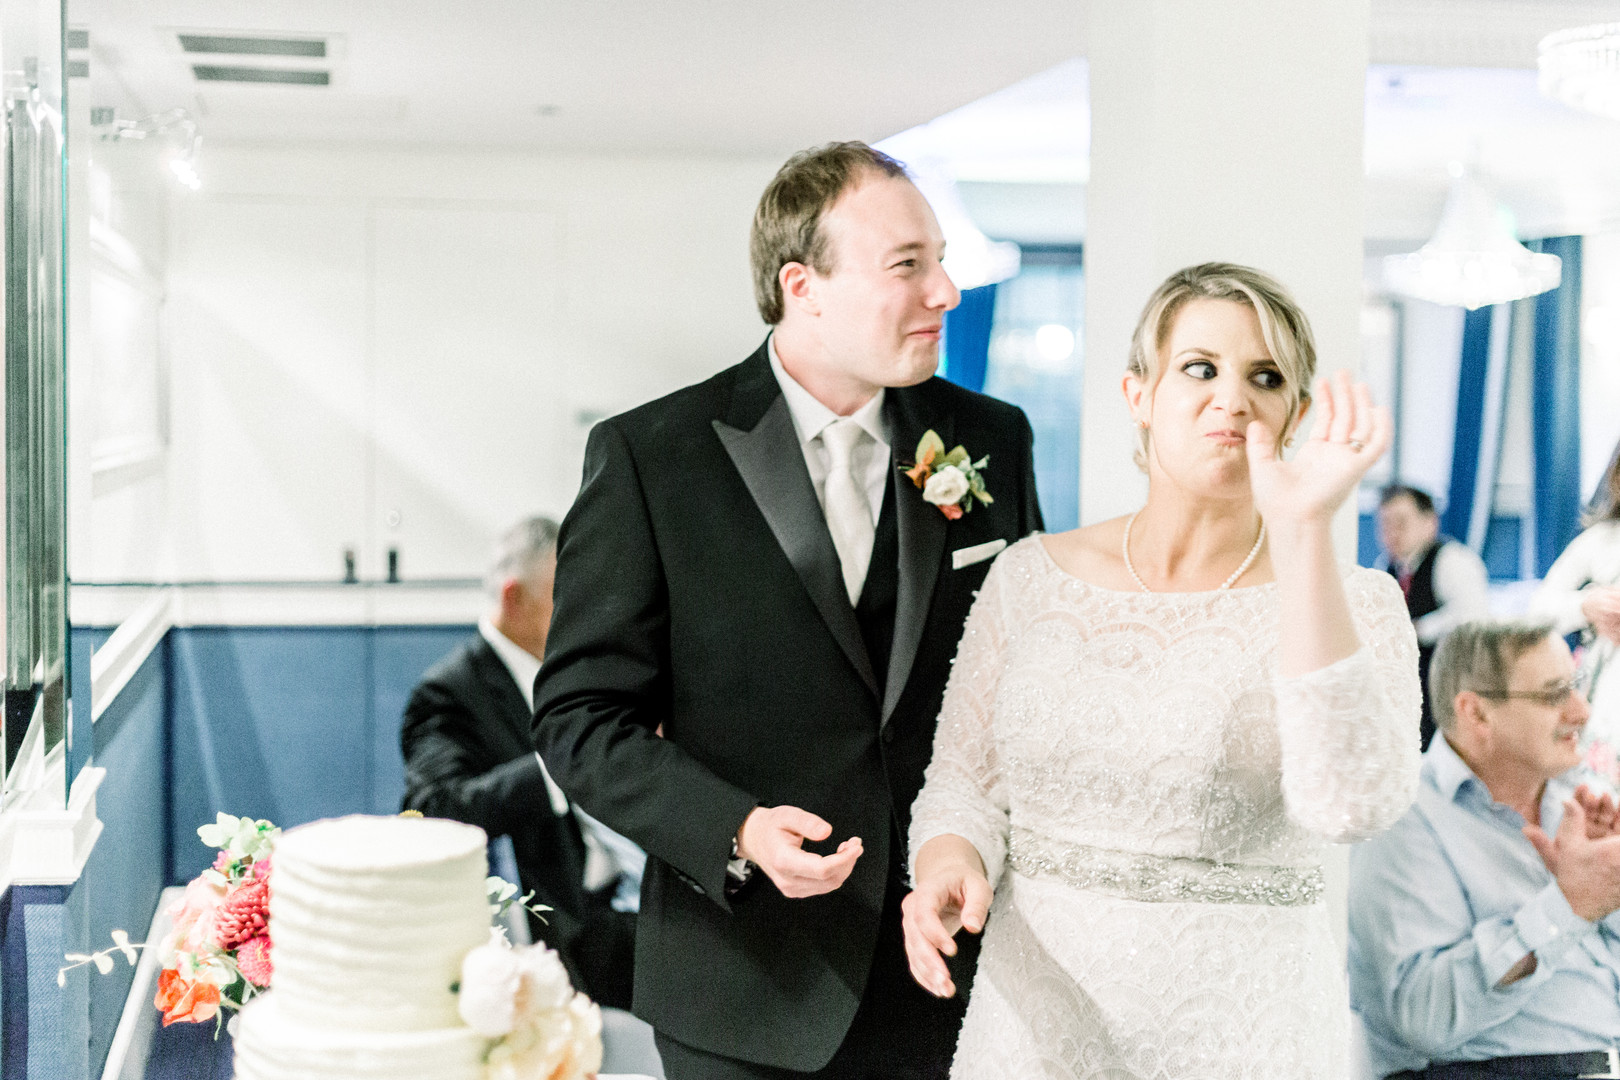 Fun wedding photography at Chesterfield Hotel London